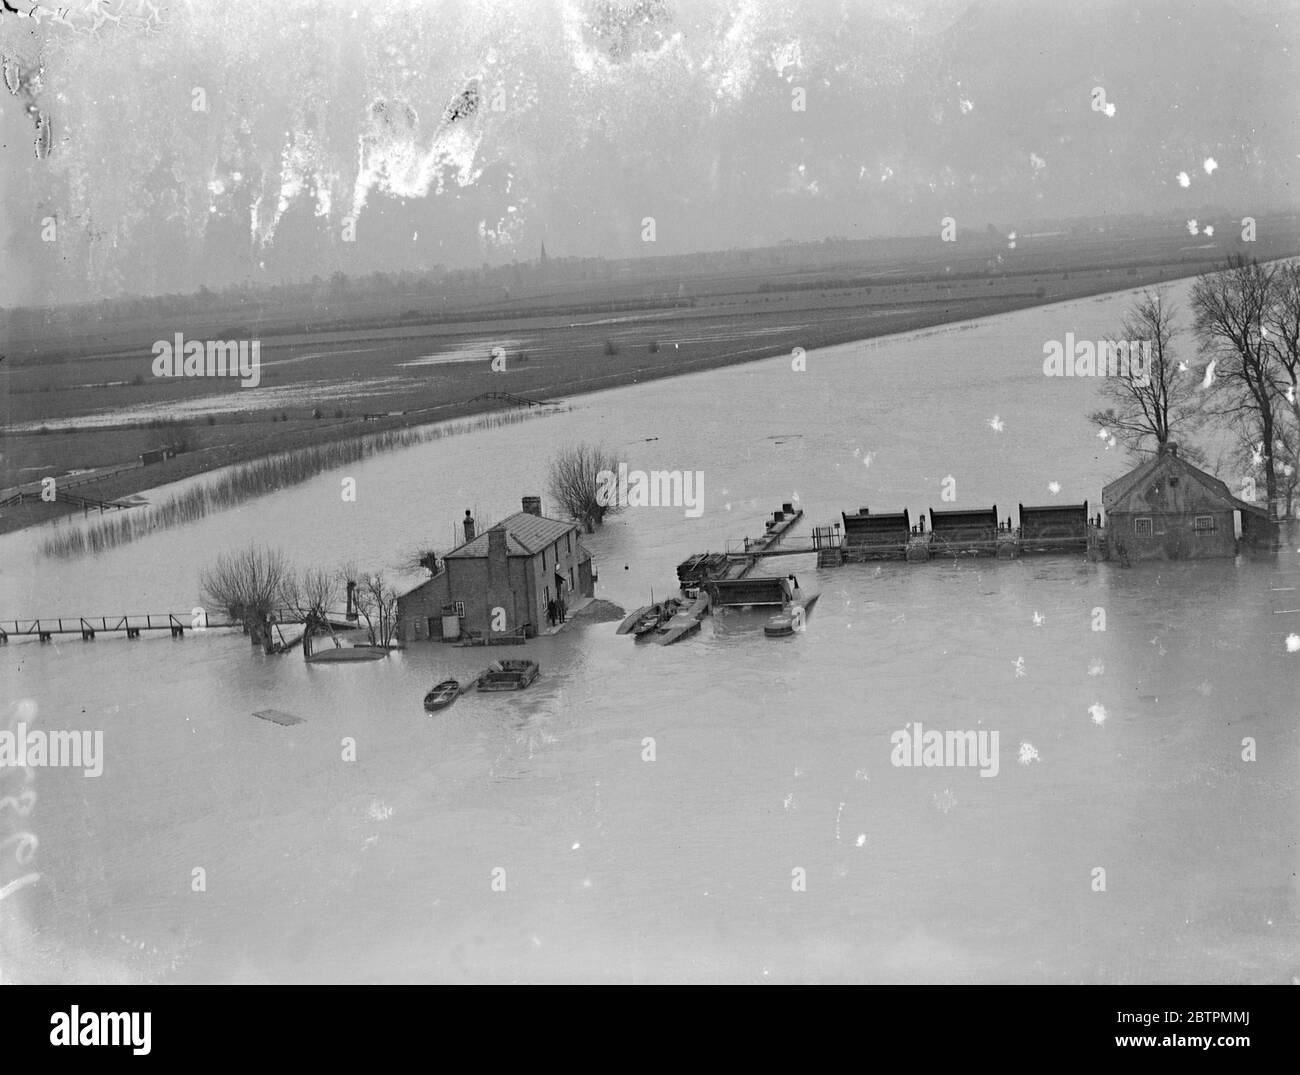 Picture from the air . Floods grow worse in Fen Country . Two hundred and fifty square miles of territory are now flooded in the Fen district , and several villages have been evacuated . Desperate efforts are still being made by the tired bands of workers to prevent the situation from growing even worse . Photo shows , a hamlet surrounded by floods between Earith and St Ives , aerial picture . 17 March 1937 Stock Photo